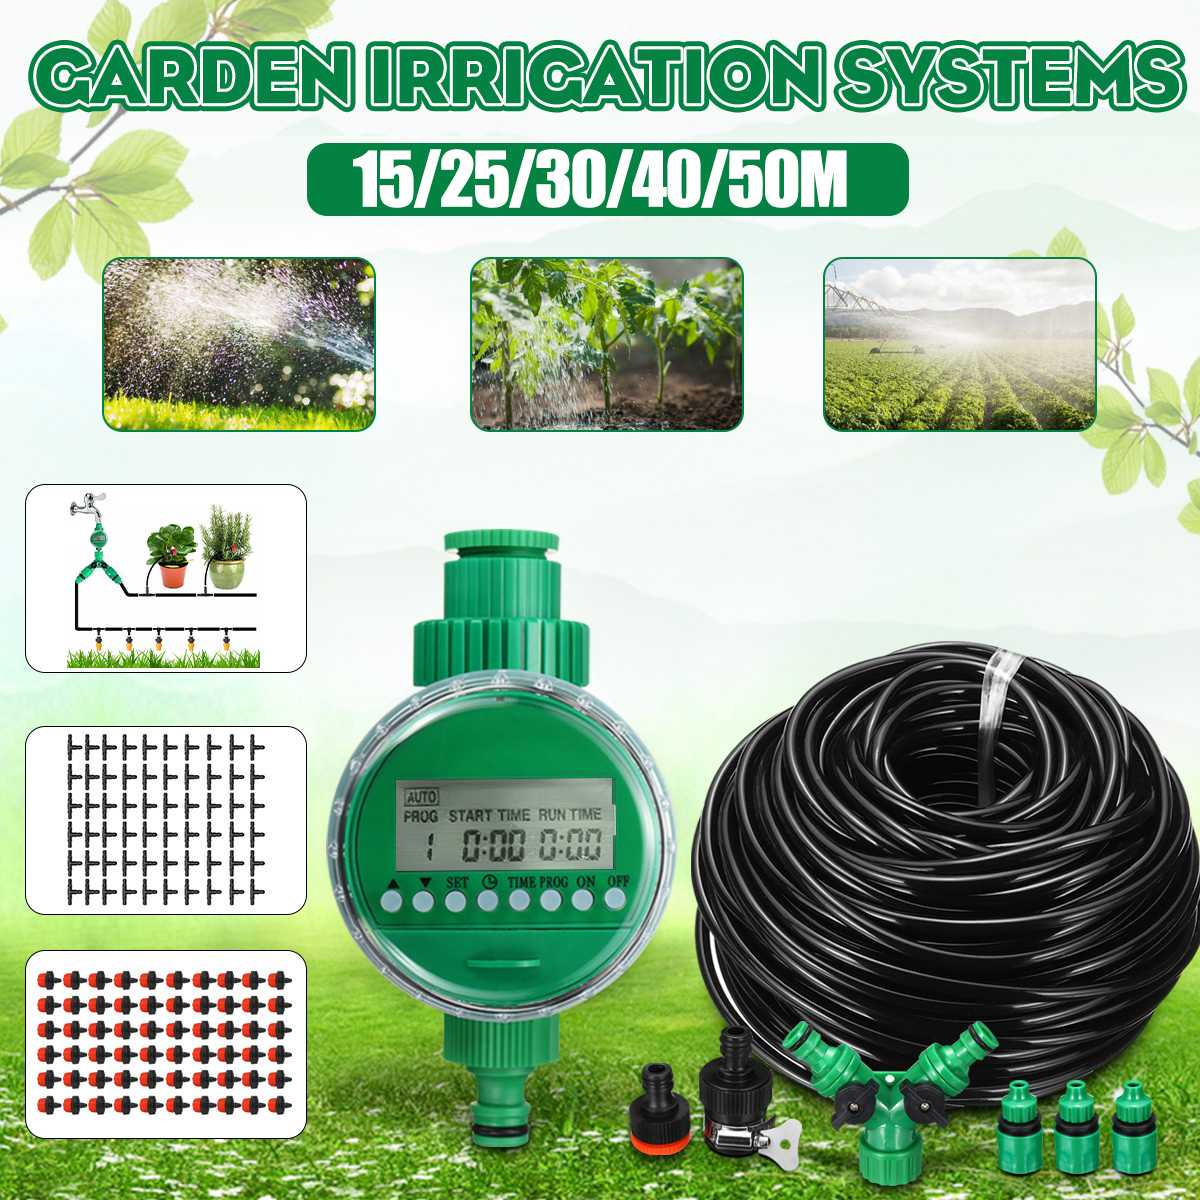 15/25/30/40/50m Automatic Watering Timer…